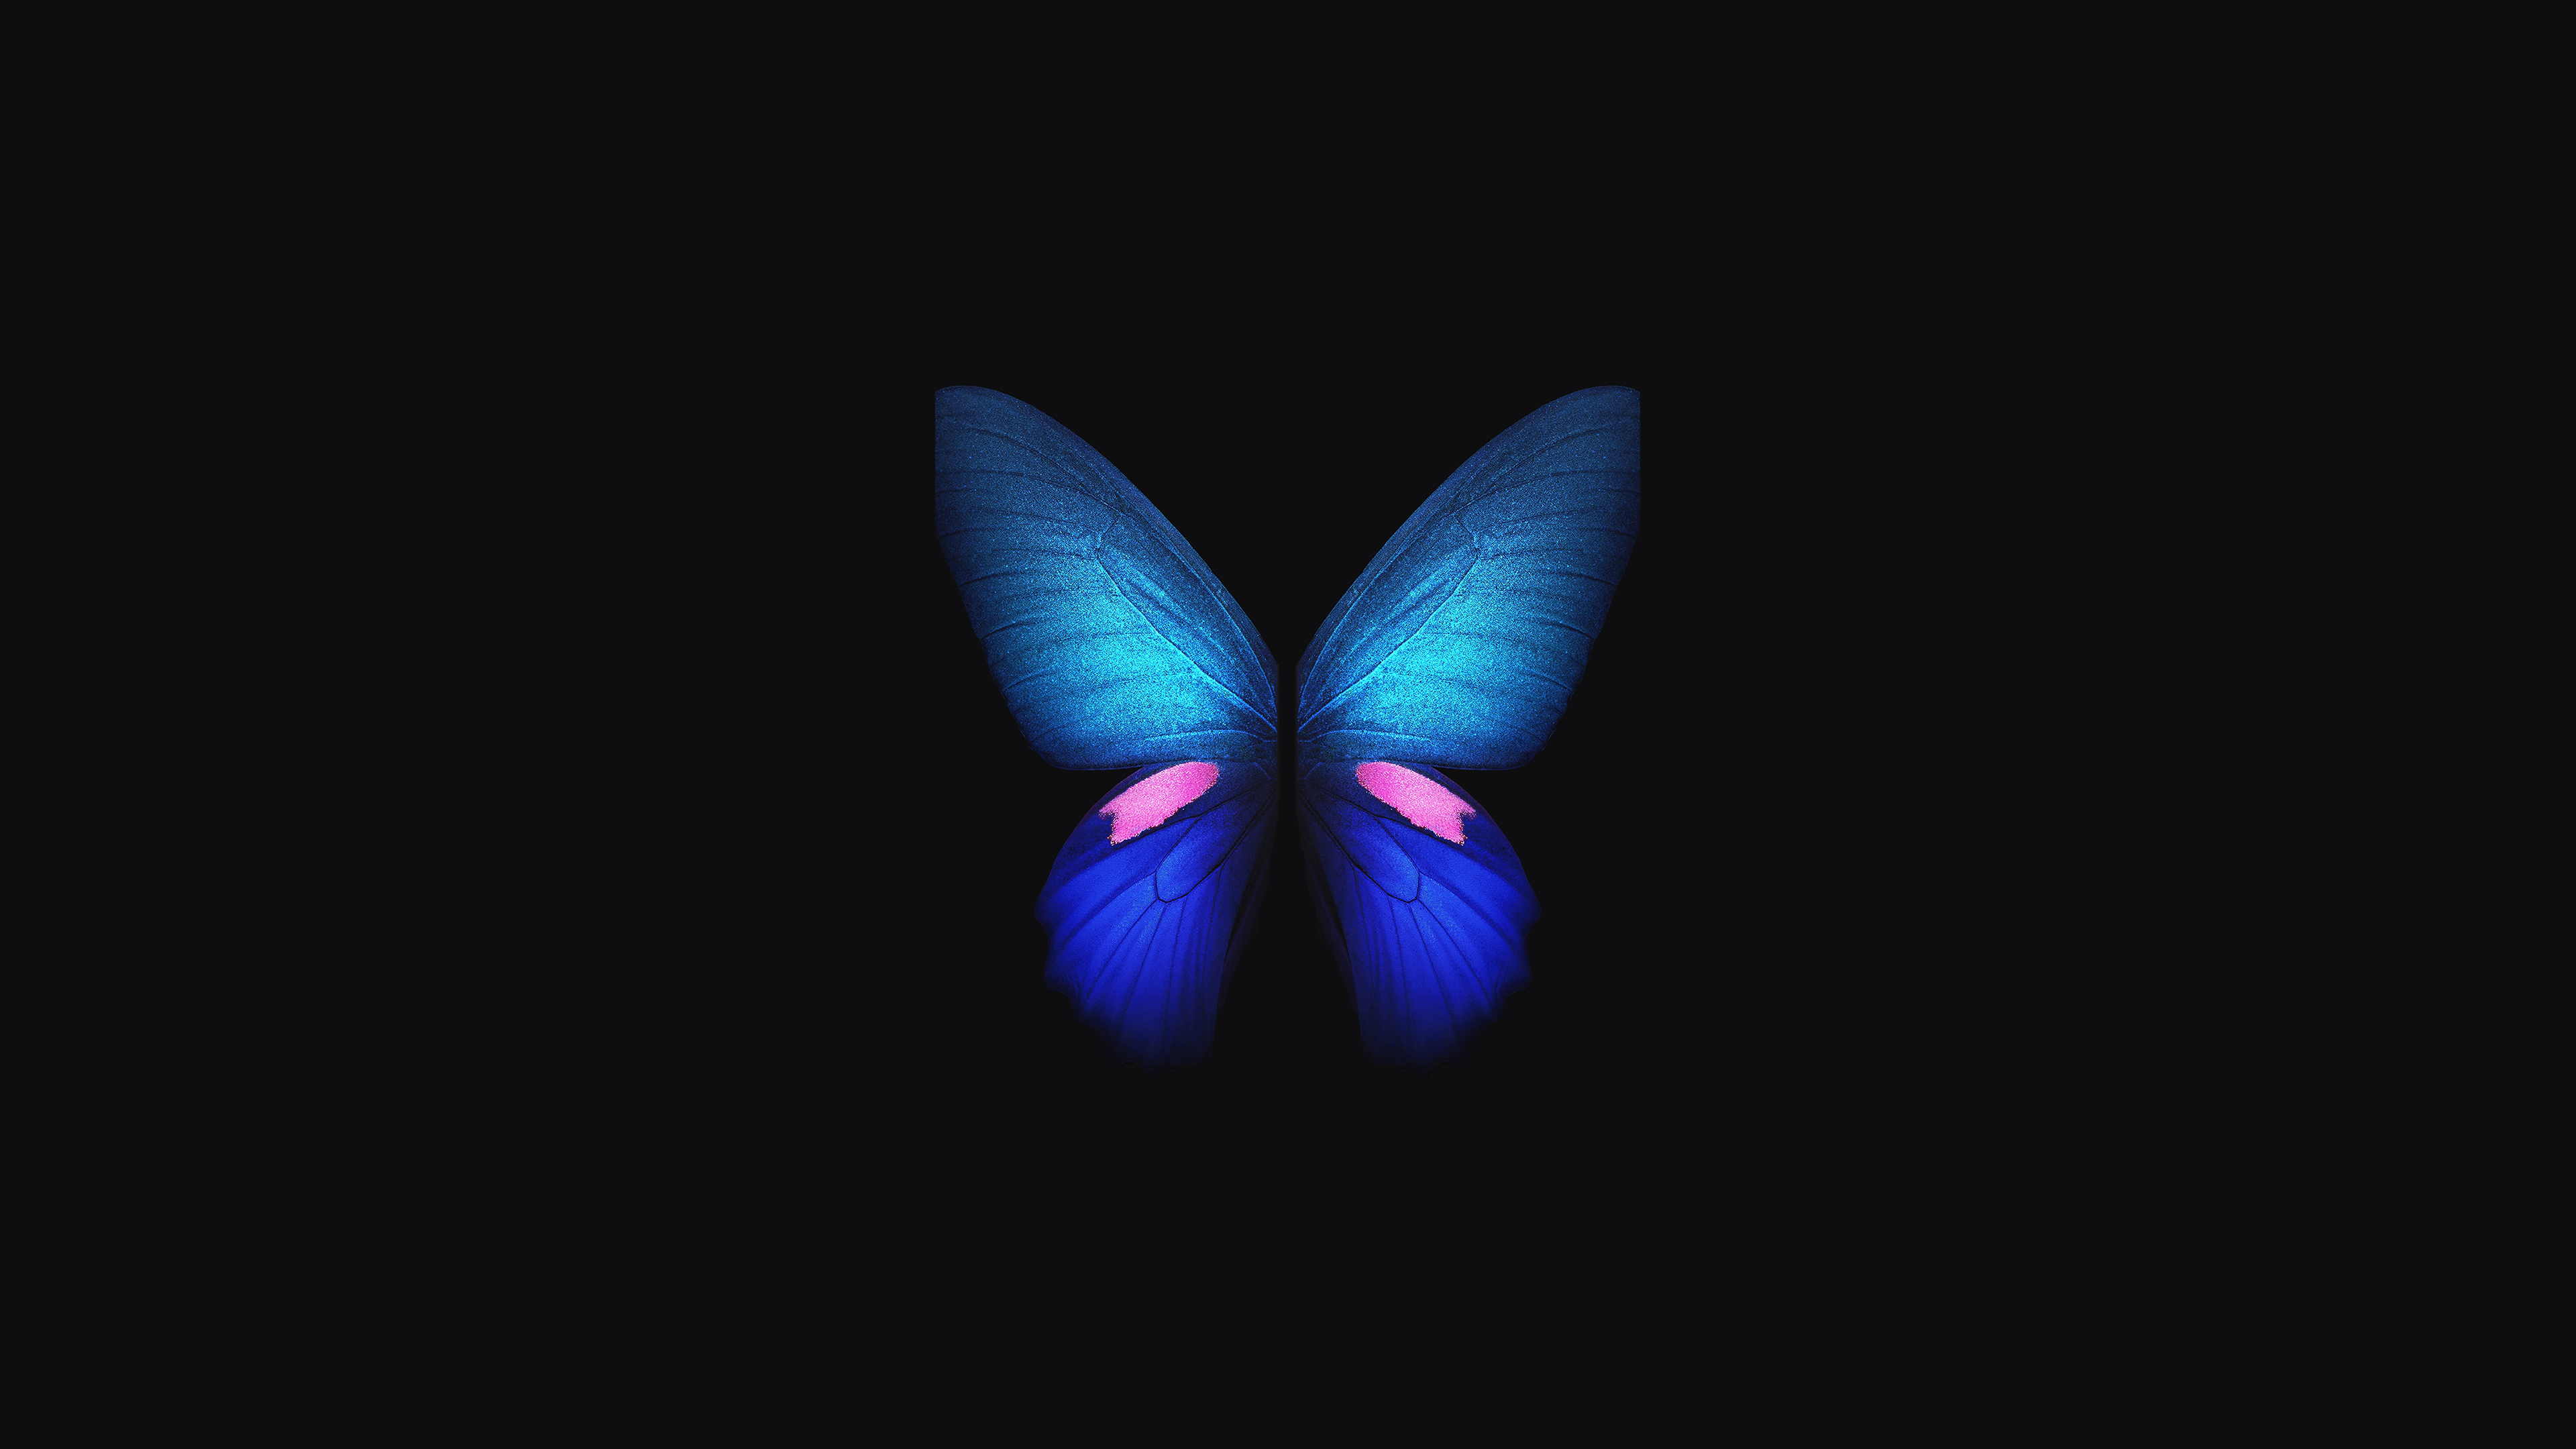 Hd Wallpapers For Samsung Galaxy S6 Edge Wallpapers Part 2: Samsung Galaxy Fold Stock, HD Artist, 4k Wallpapers